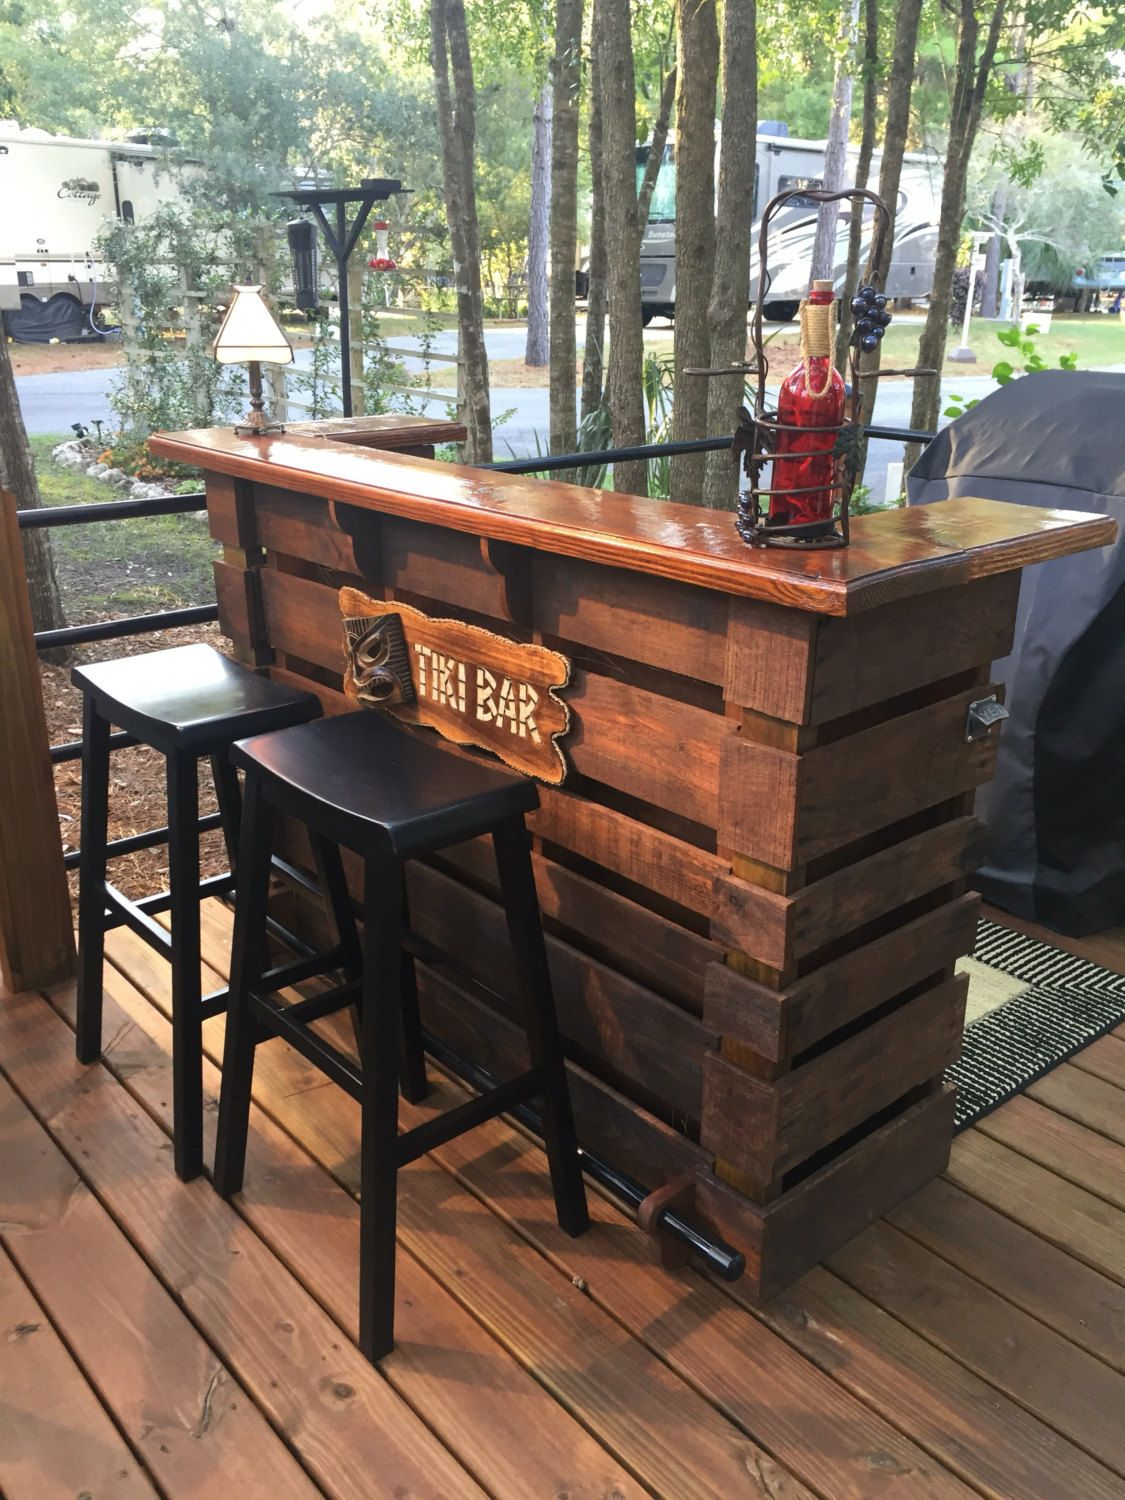 the kona pallet bar tiki bar •• spring sale ••the most